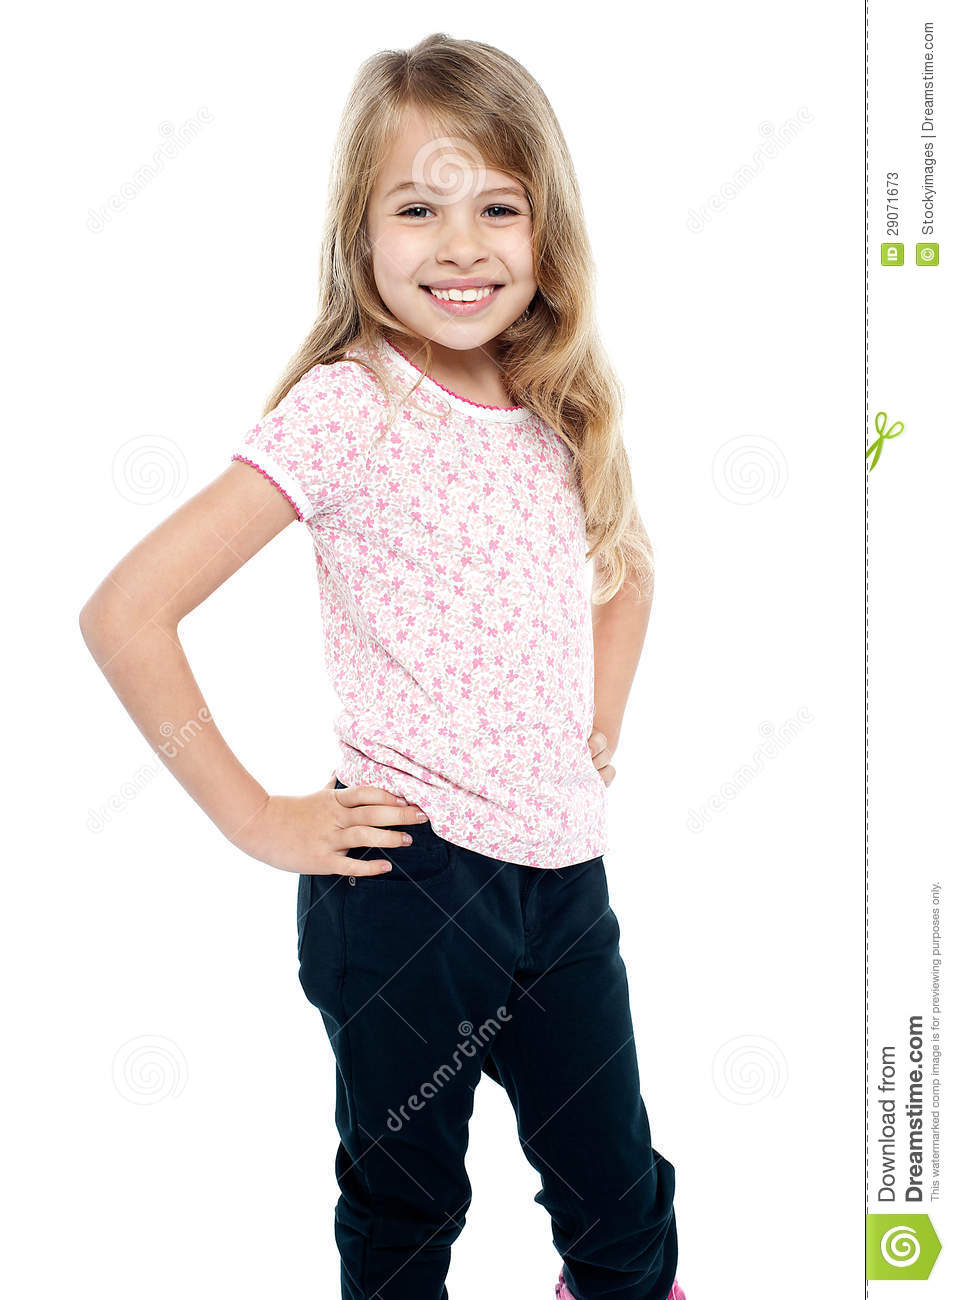 Cheerful Girl Child With Hands On Waist Stock Photos - Image: 29071673